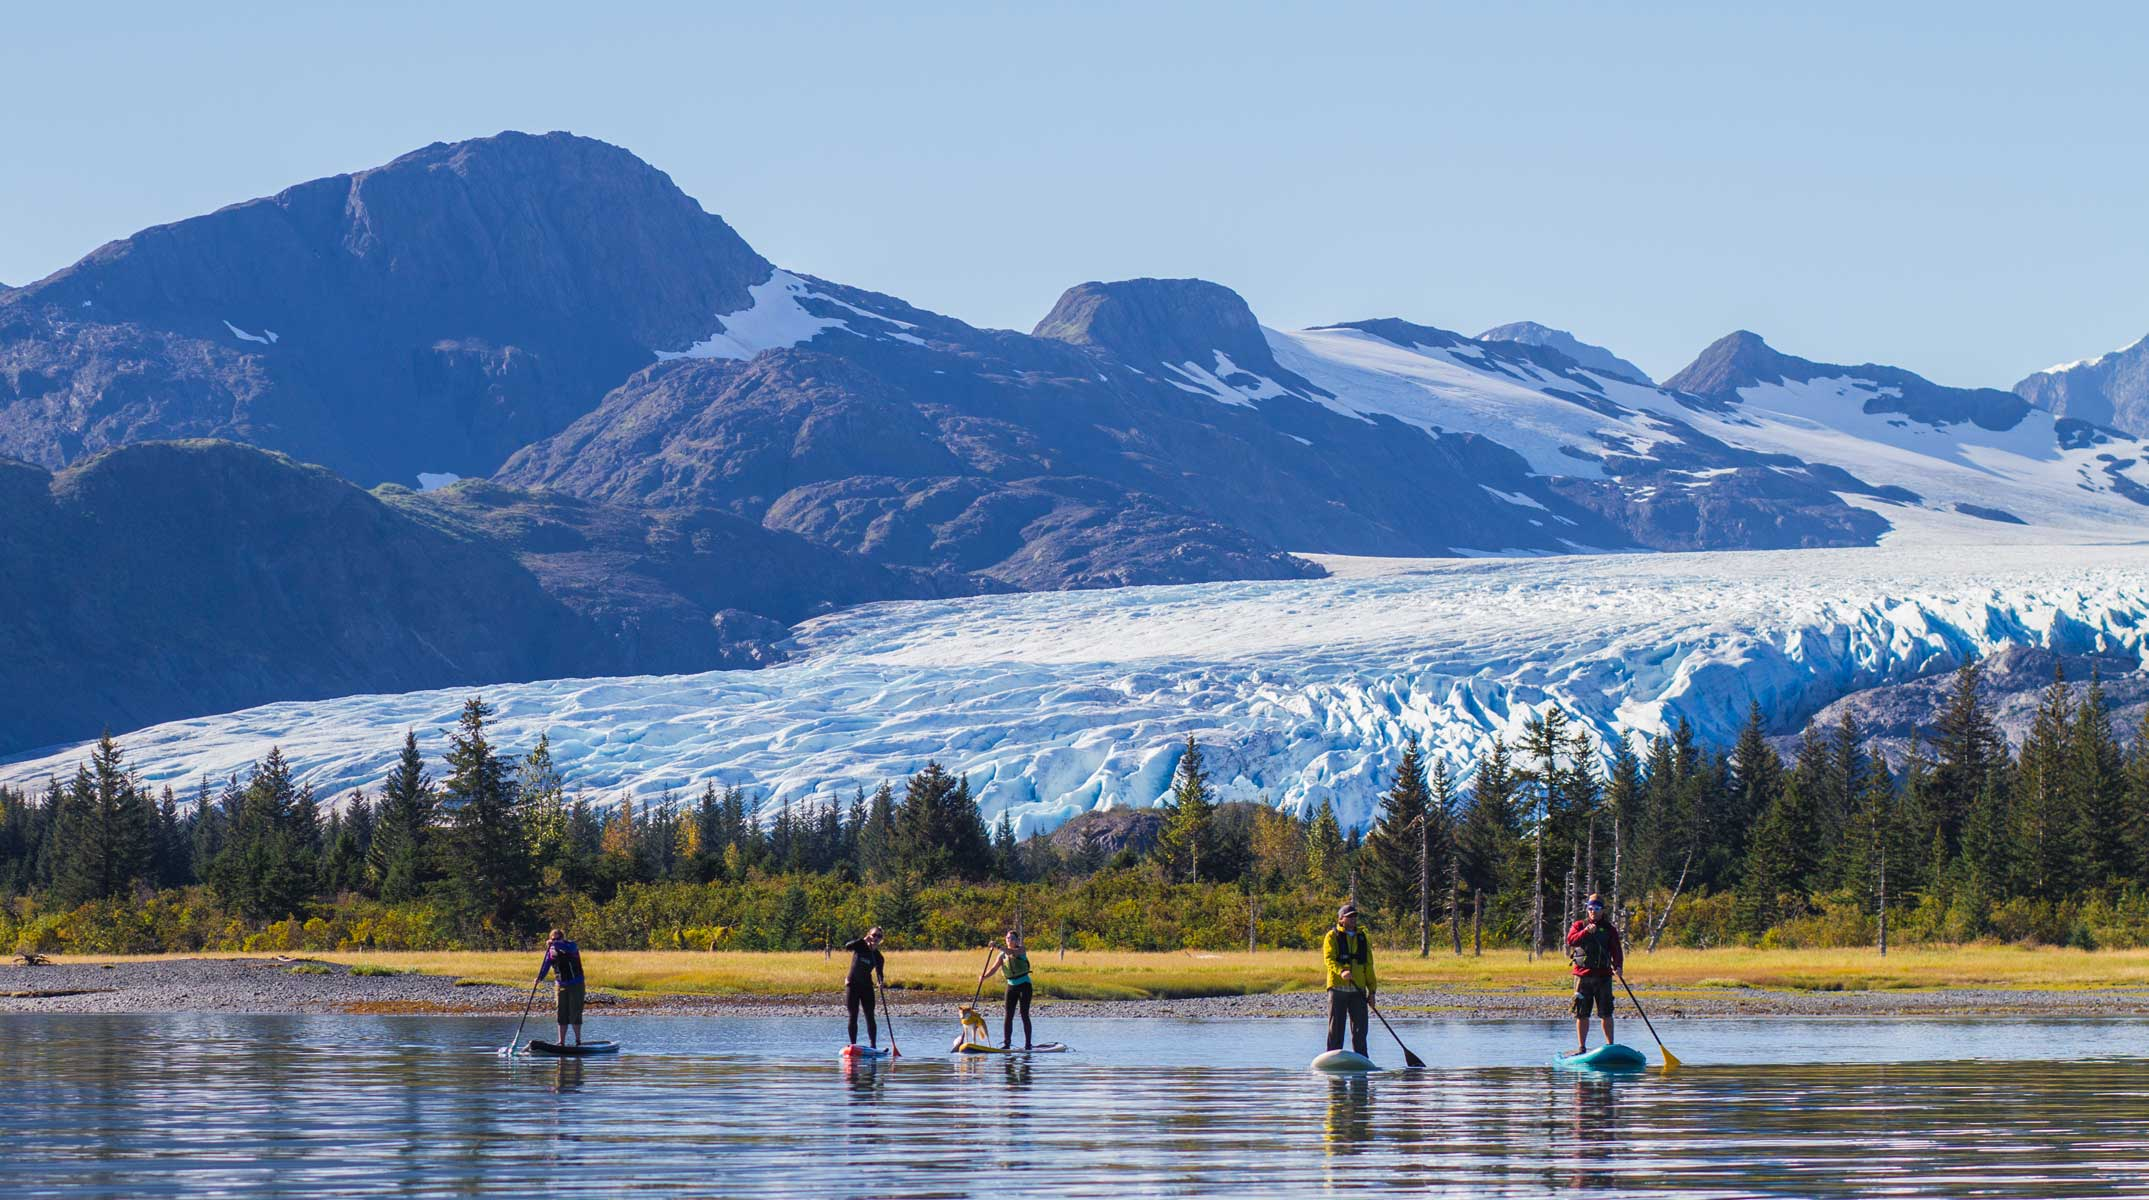 Alaska Paddleboarding boat trip - Prince William Sound Whittier Alaska